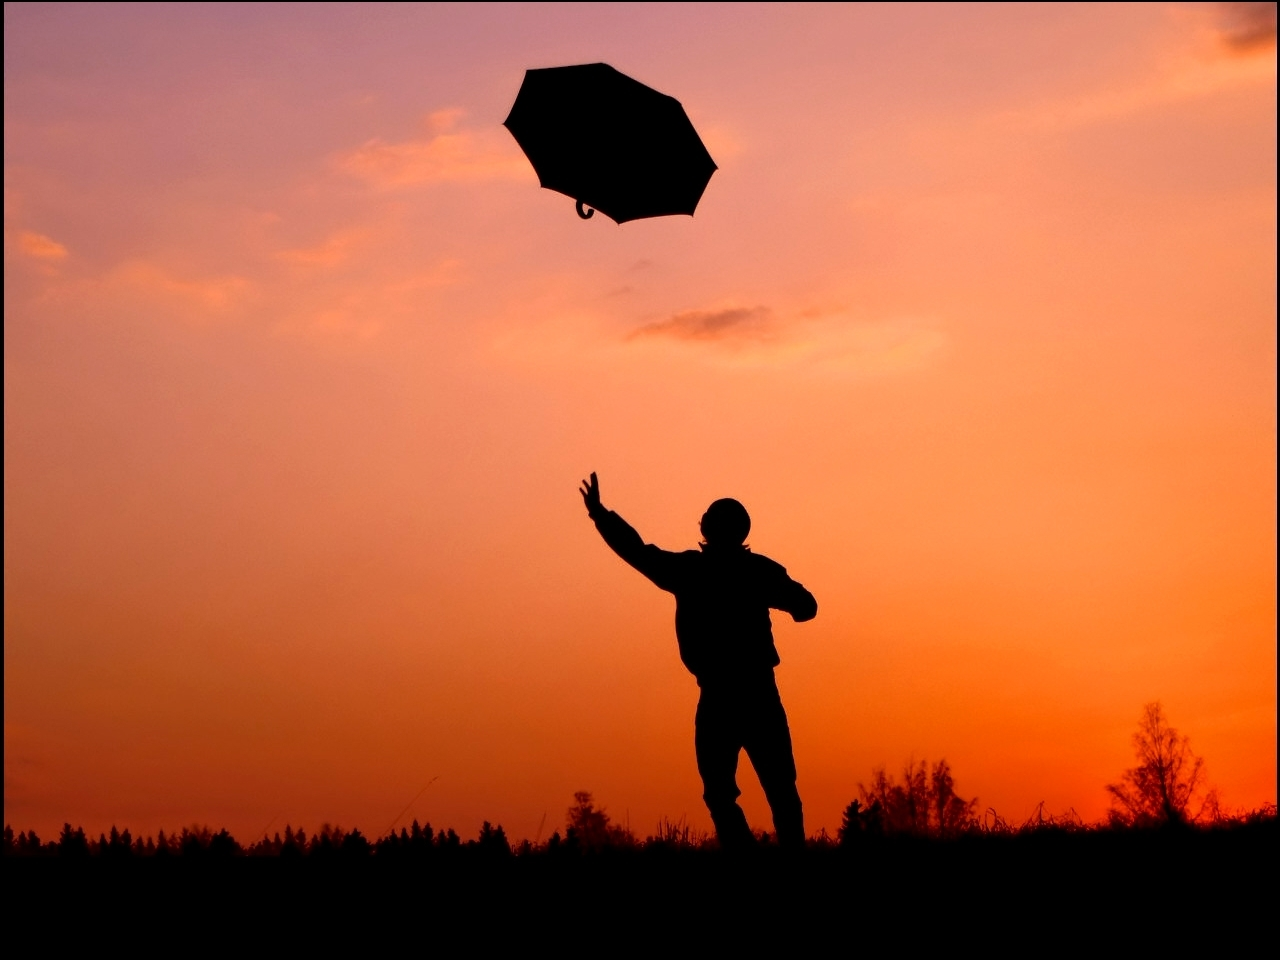 silhouette Umbrellas HD Wallpaper